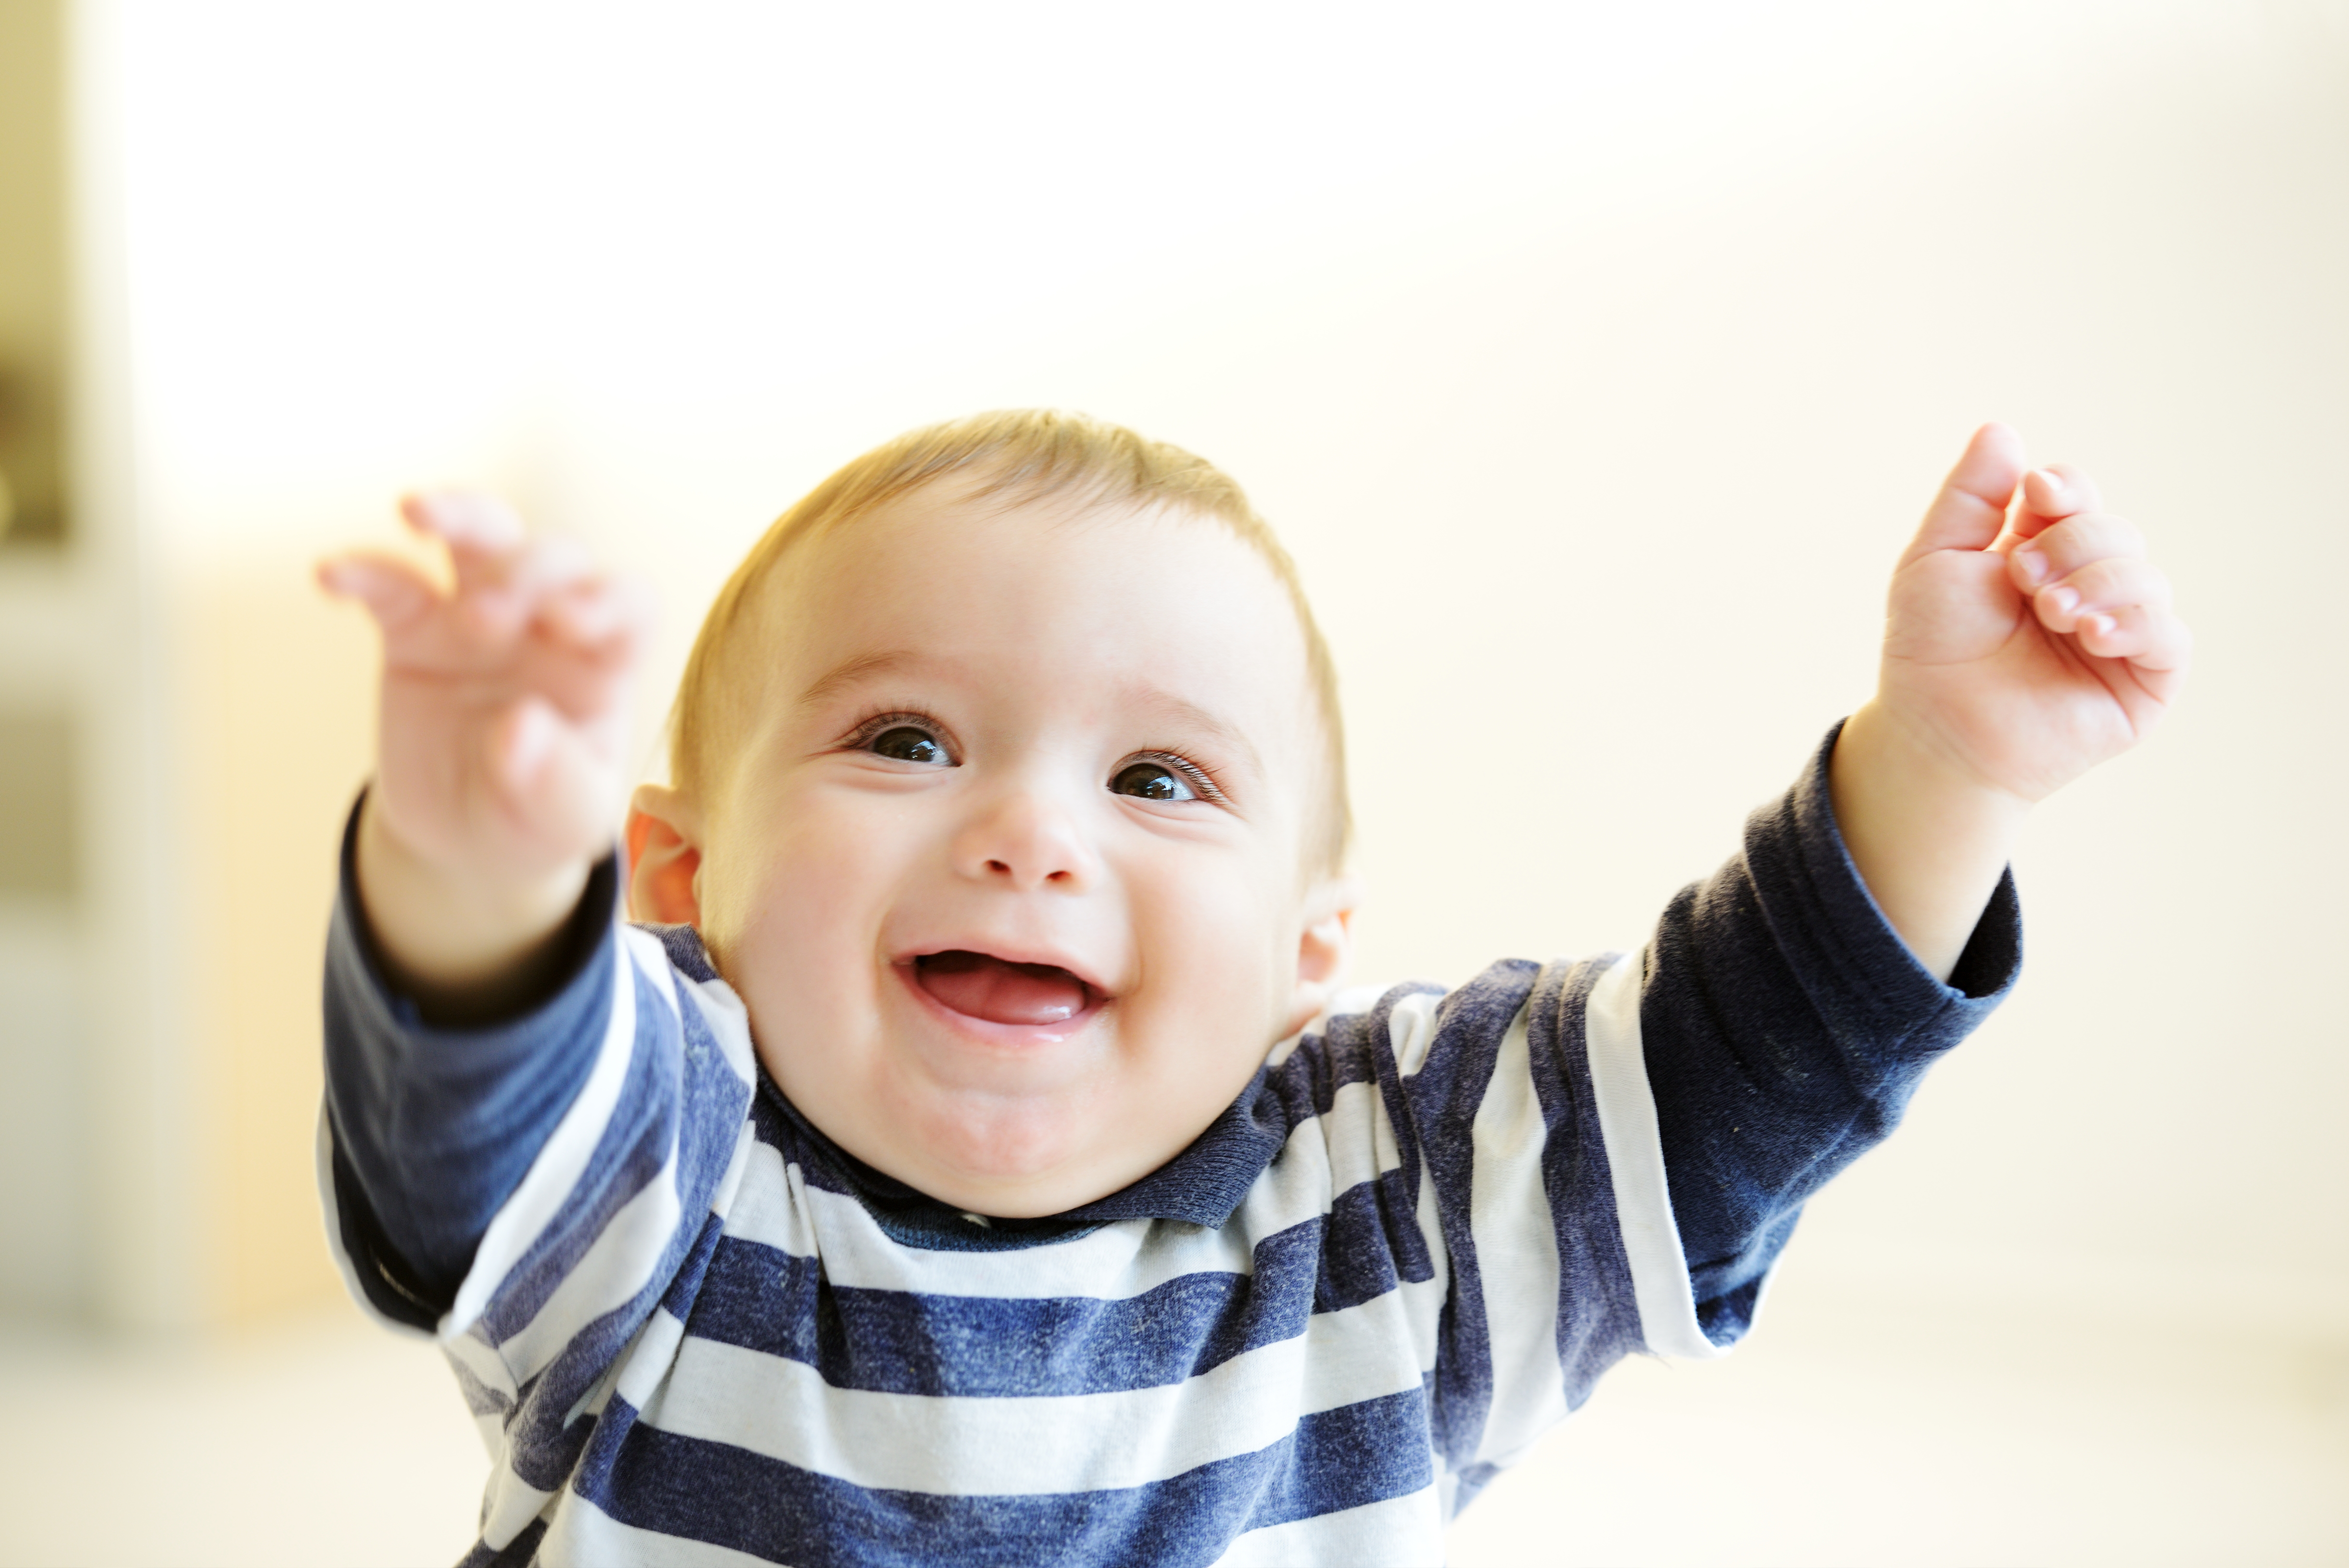 Beautiful smiling cute cheerful baby giving you hands